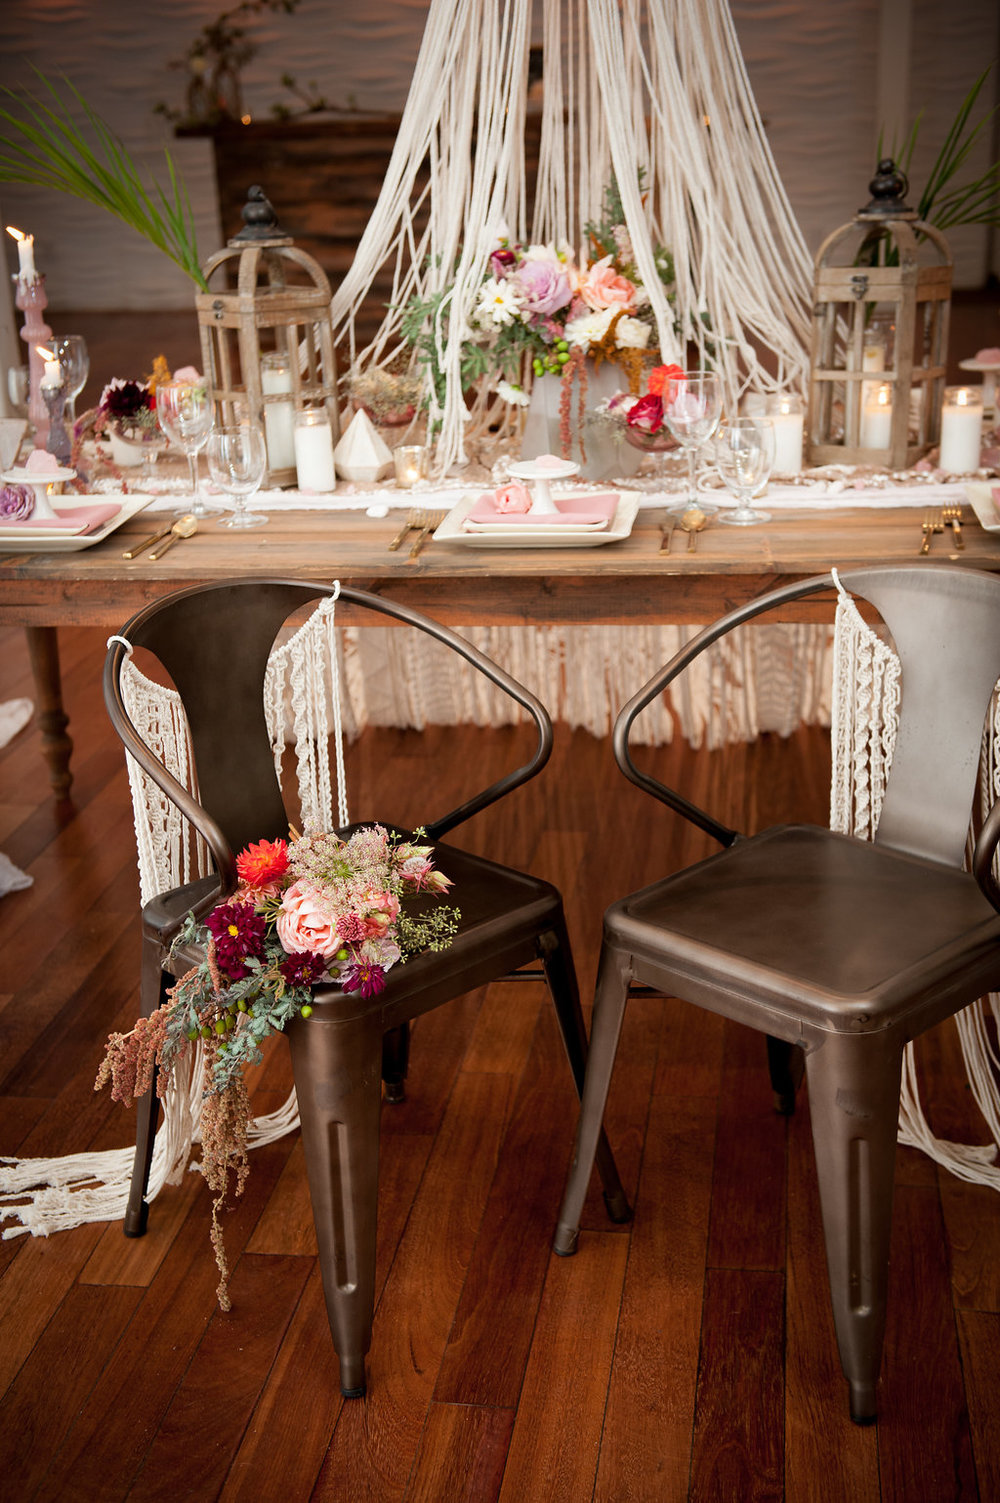 ARCHES, TABLES & CHAIRS - ARTFULLY ACCENTUATE YOUR EVENT FROM THE GROUND UP.